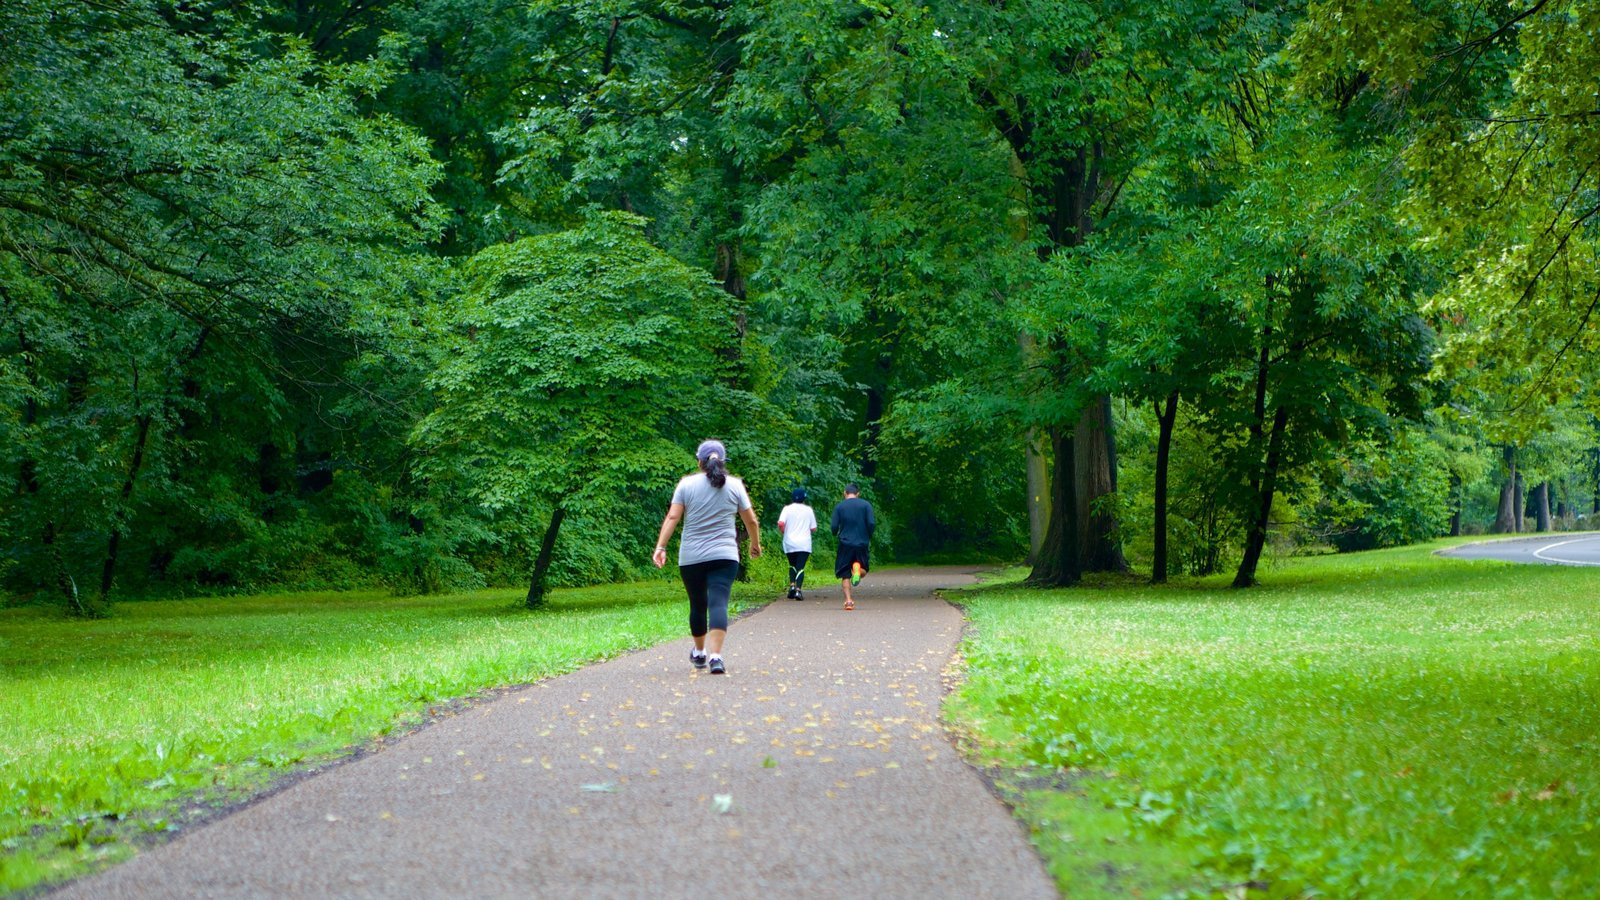 Branch Brook Park featuring a park and hiking or walking as well as a small group of people